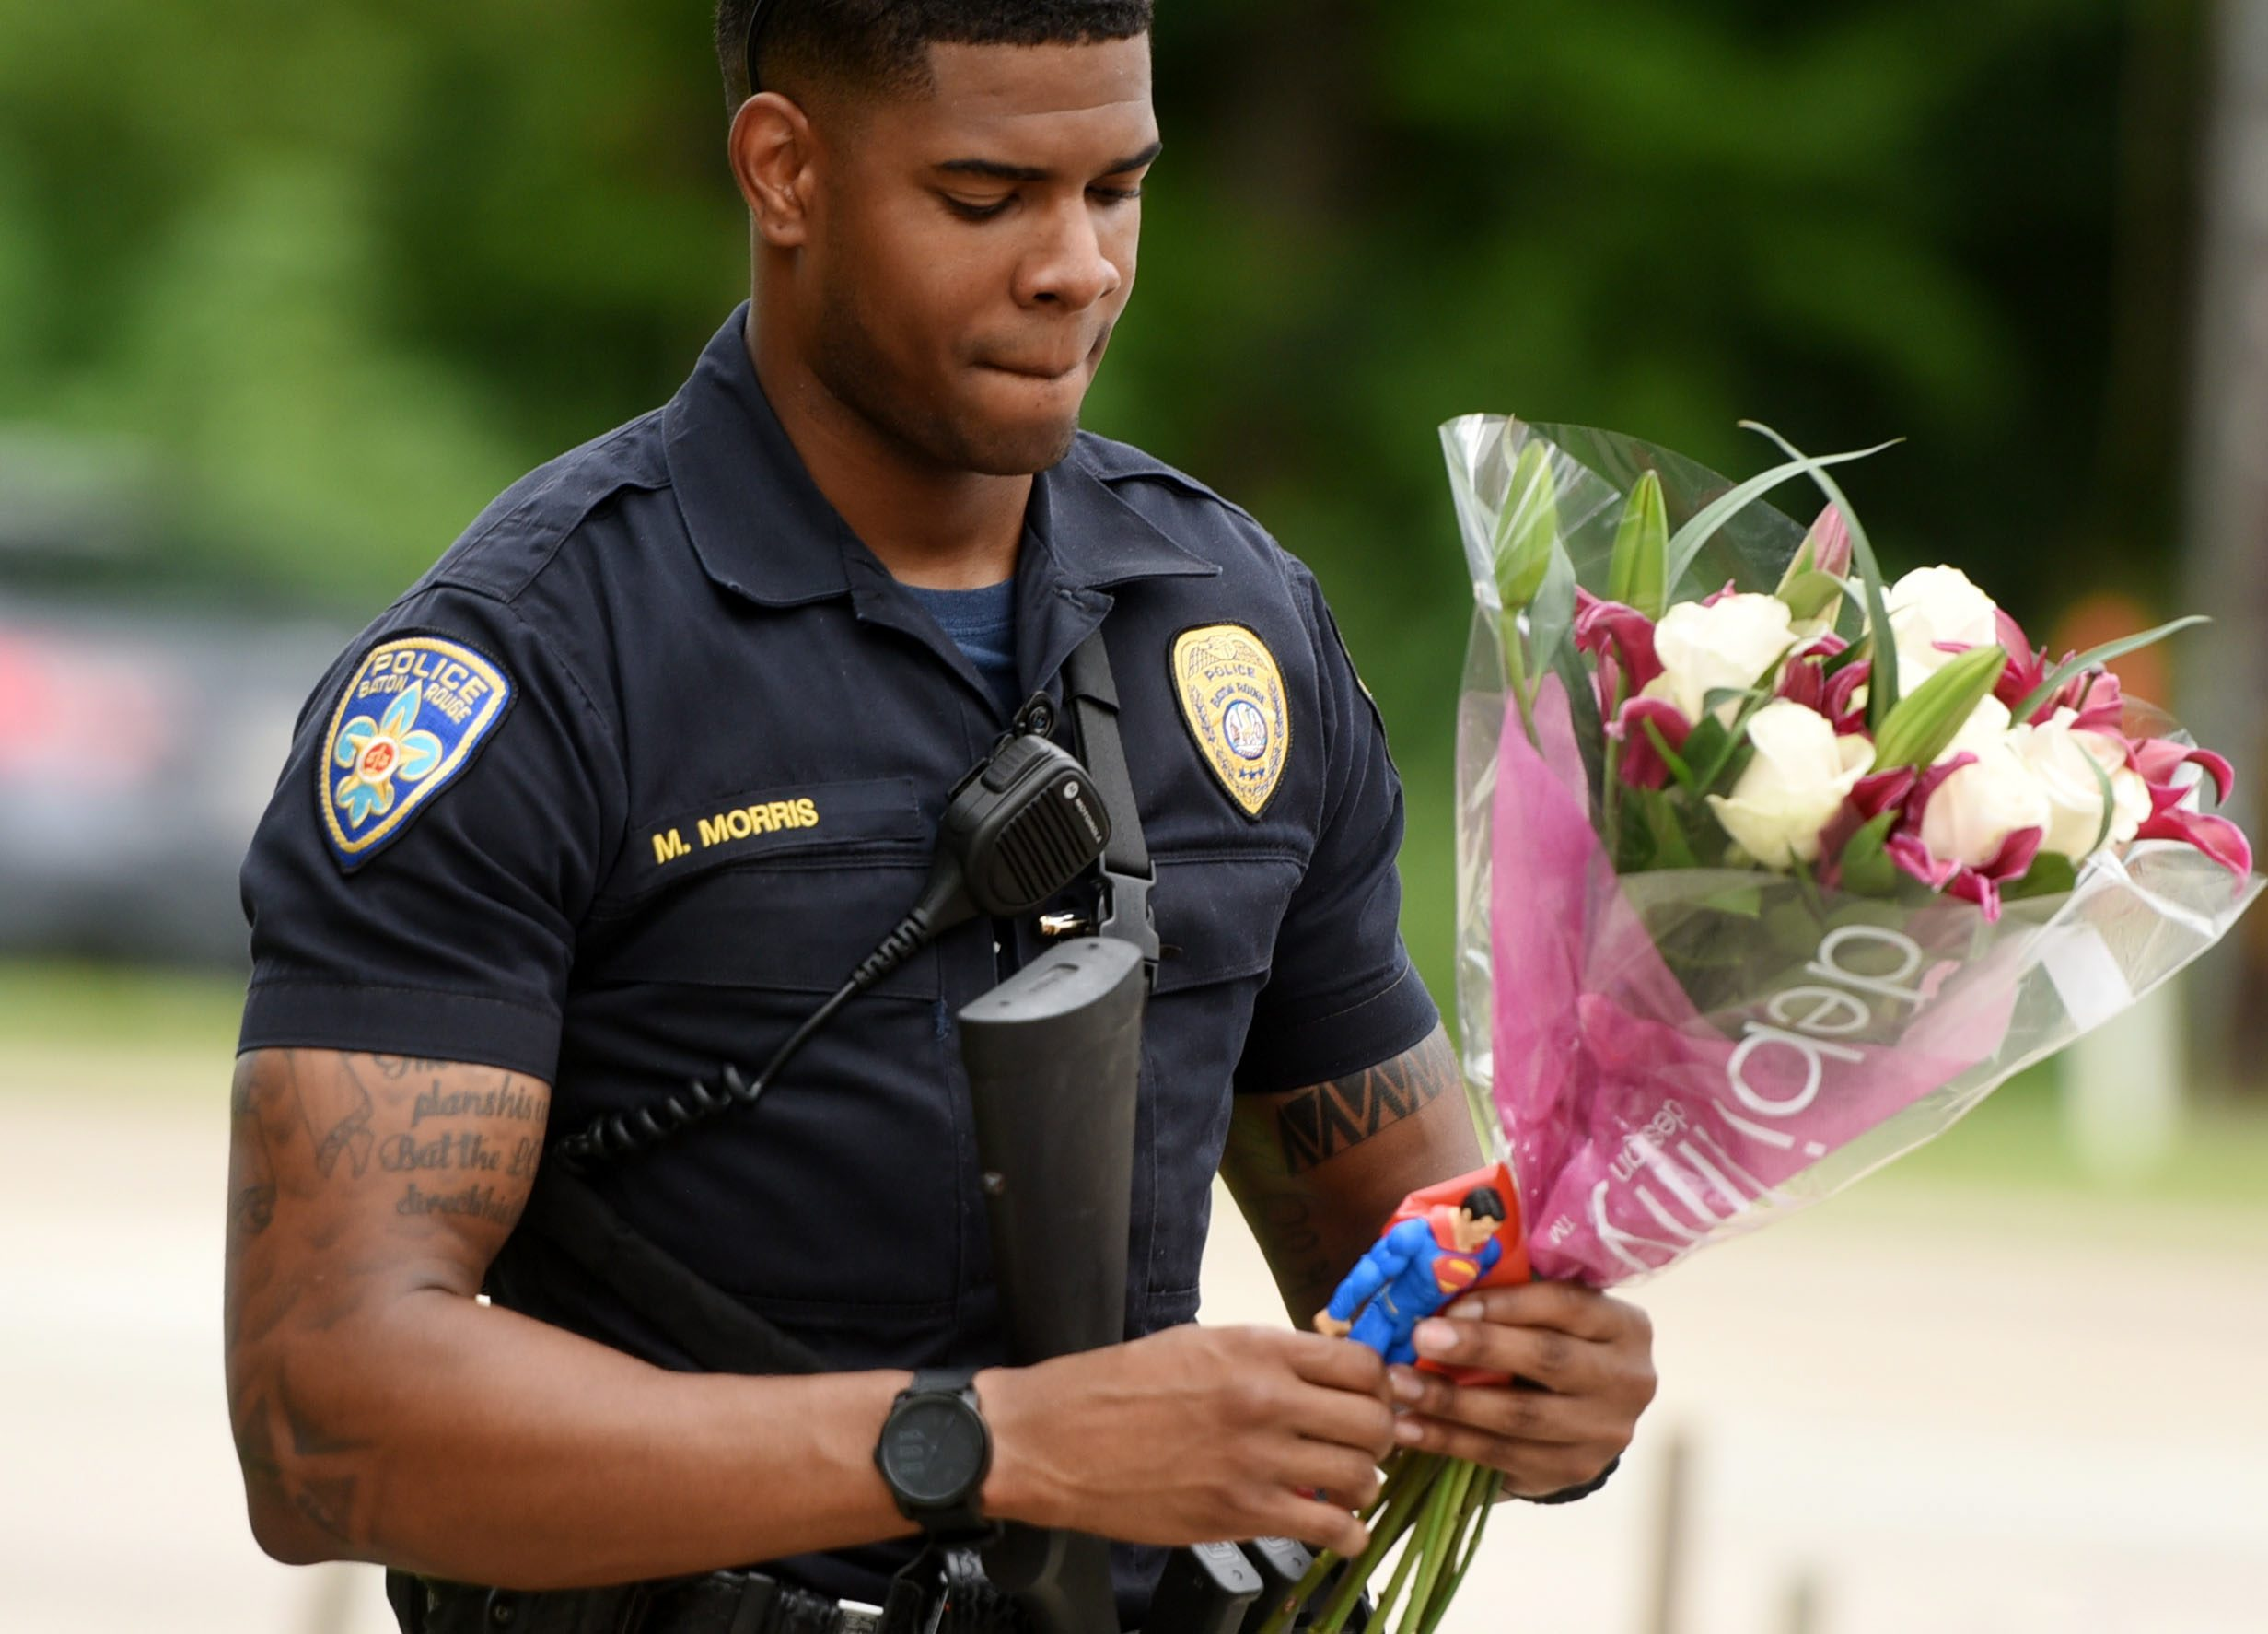 Baton Rouge Police Department Officer Markell Morris holds a bouquet of flowers and a Superman action figure that a citizen left at the Our Lady of the Lake Hospital where the police officers were brought on July 17, 2016. Henrietta Wildsmith/The Times via AP.